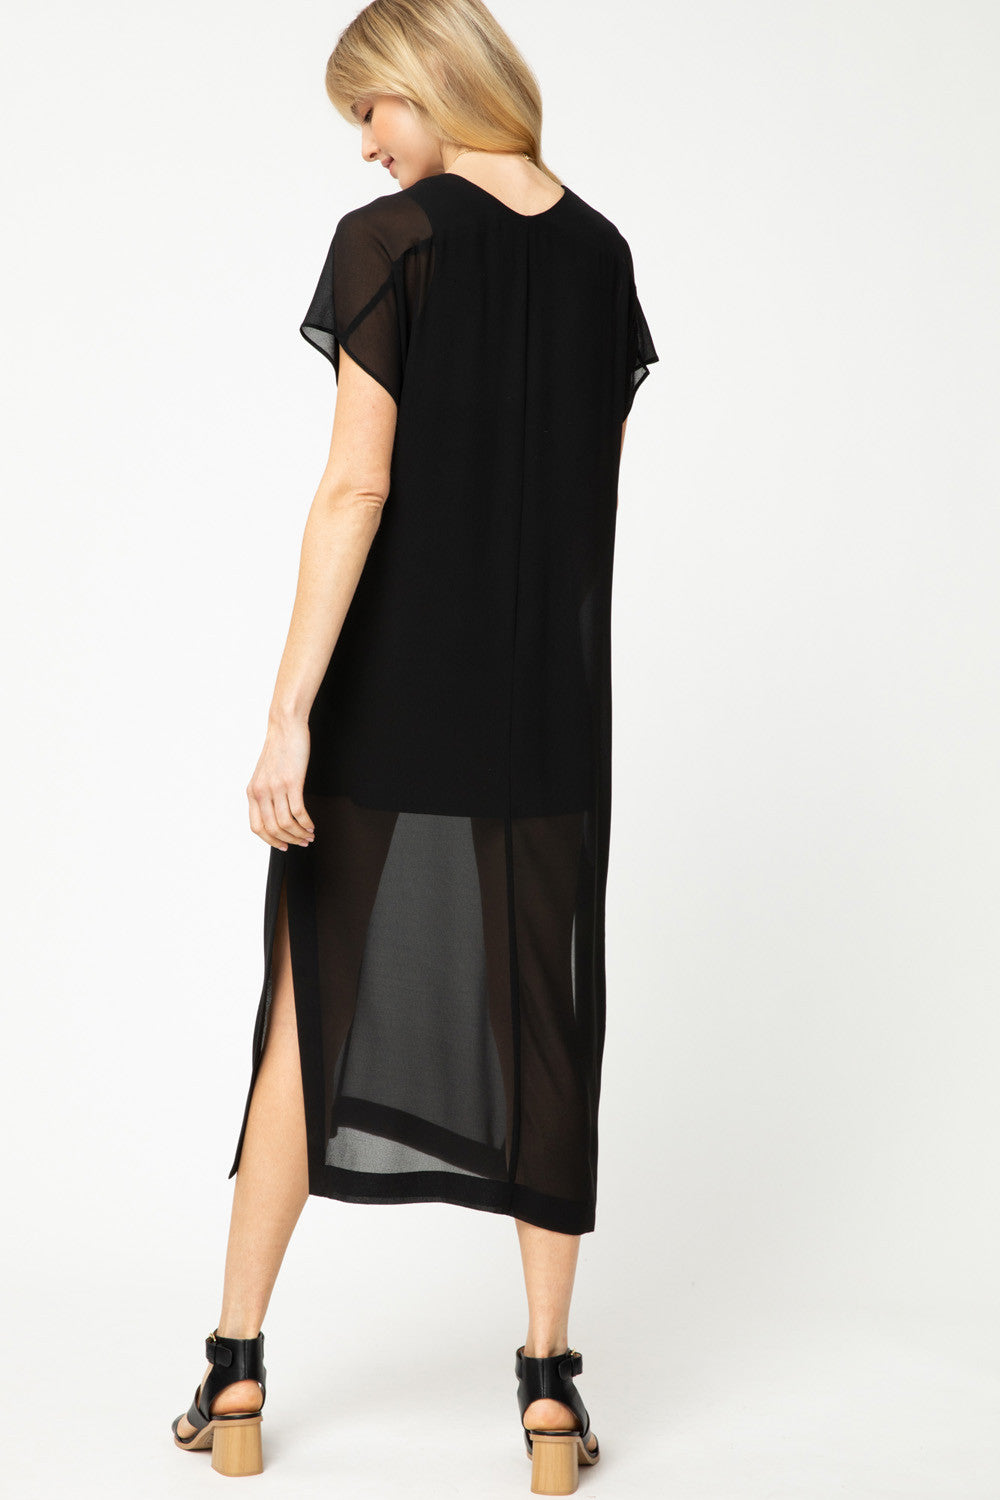 LAST CALL SIZE L | Solid Black V-Neck Maxi Dress